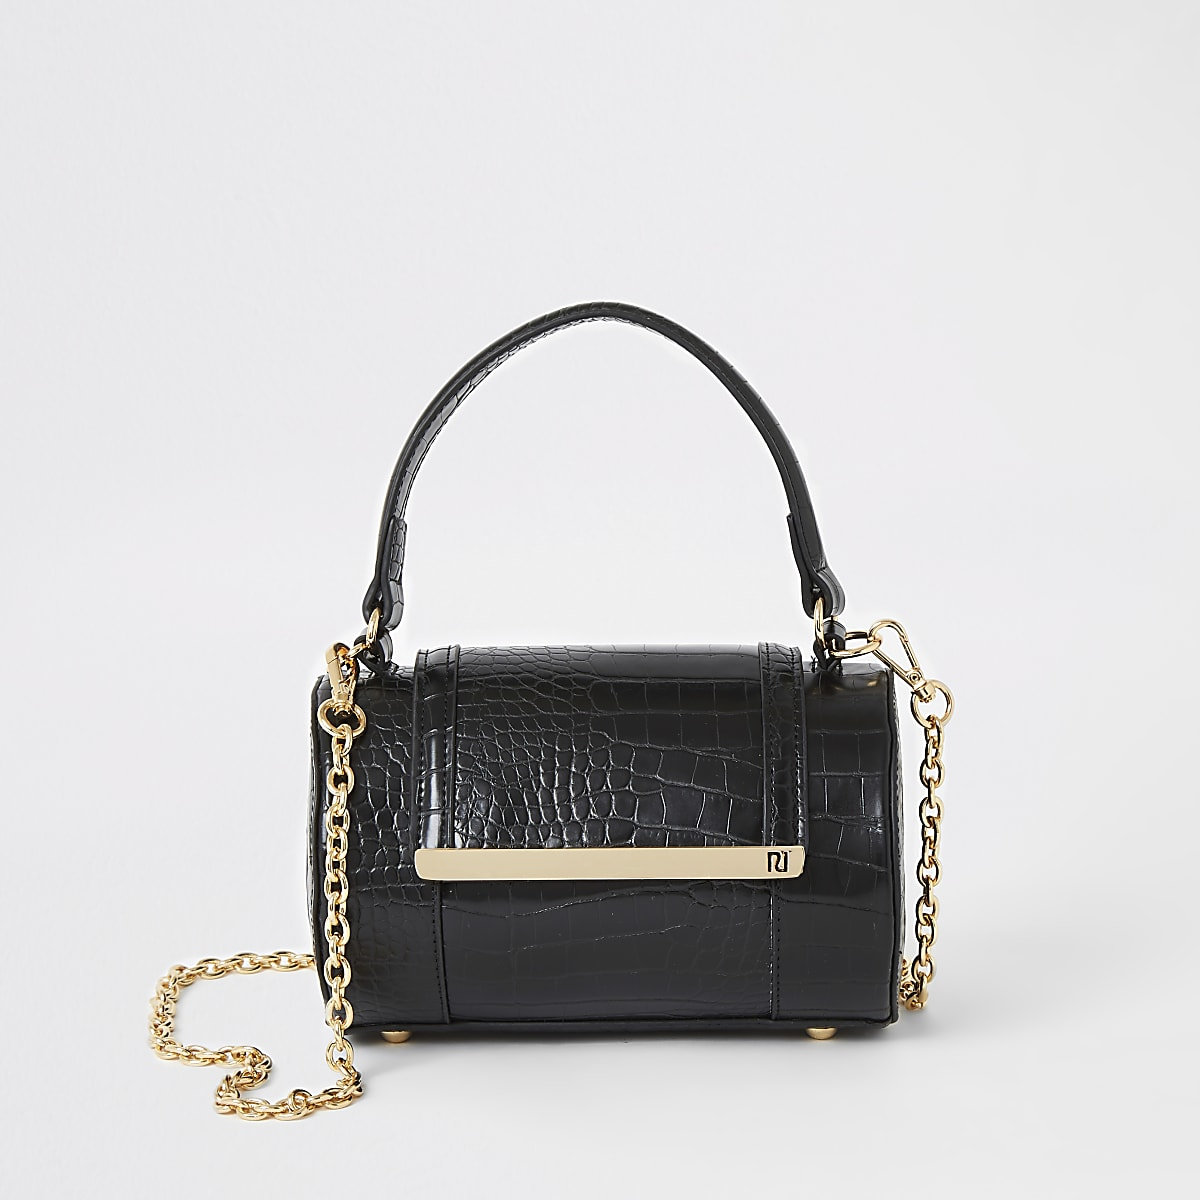 Black croc barrel cross body bag